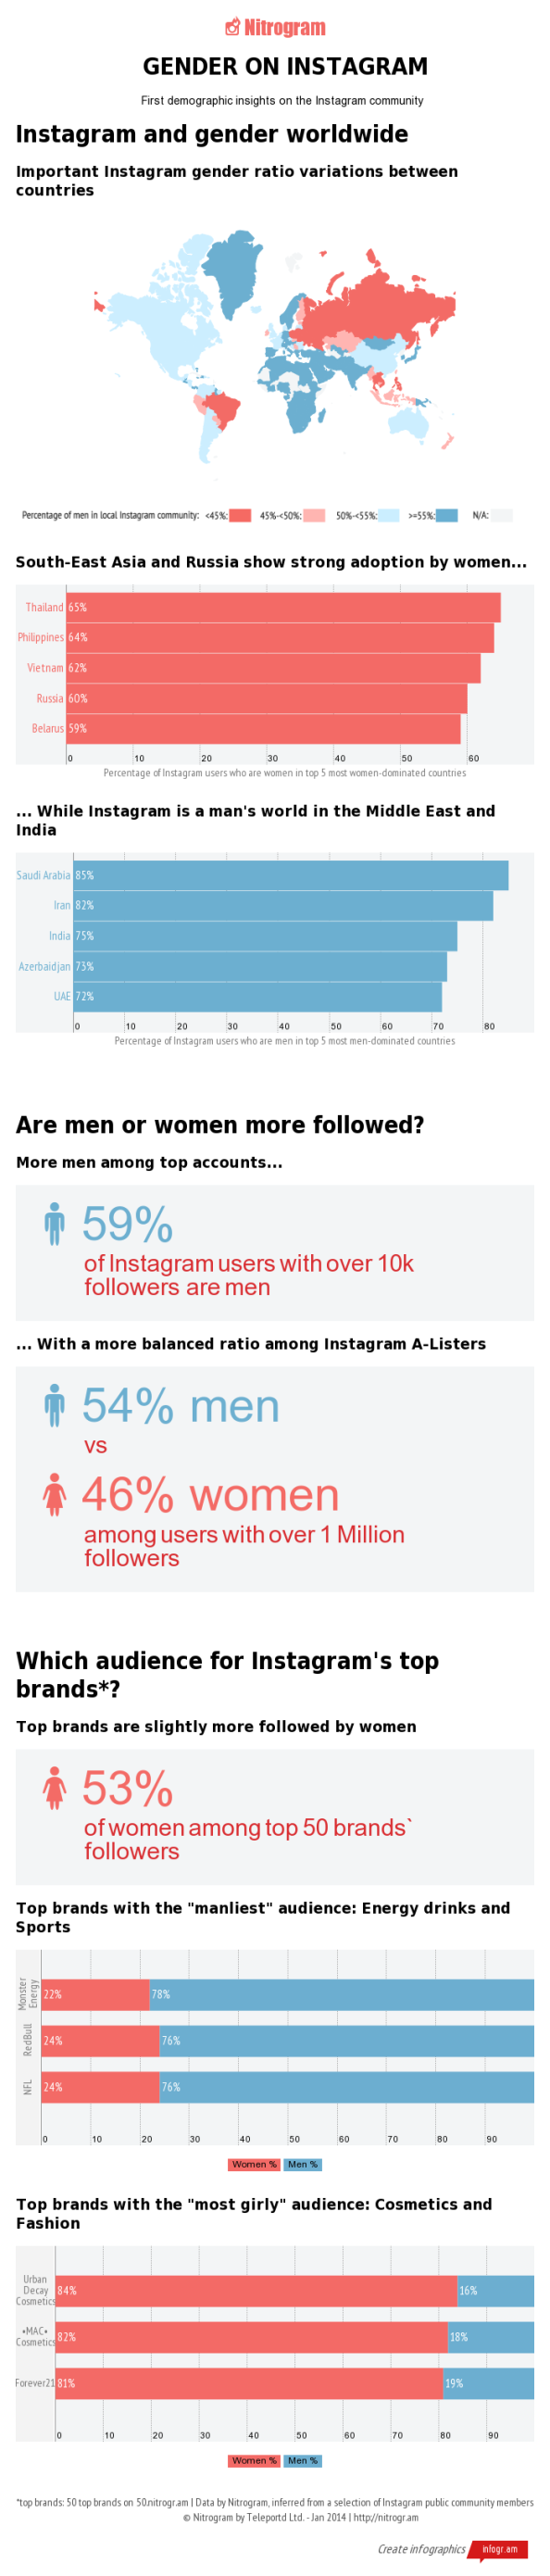 Gender on Instagram's Social Media Network